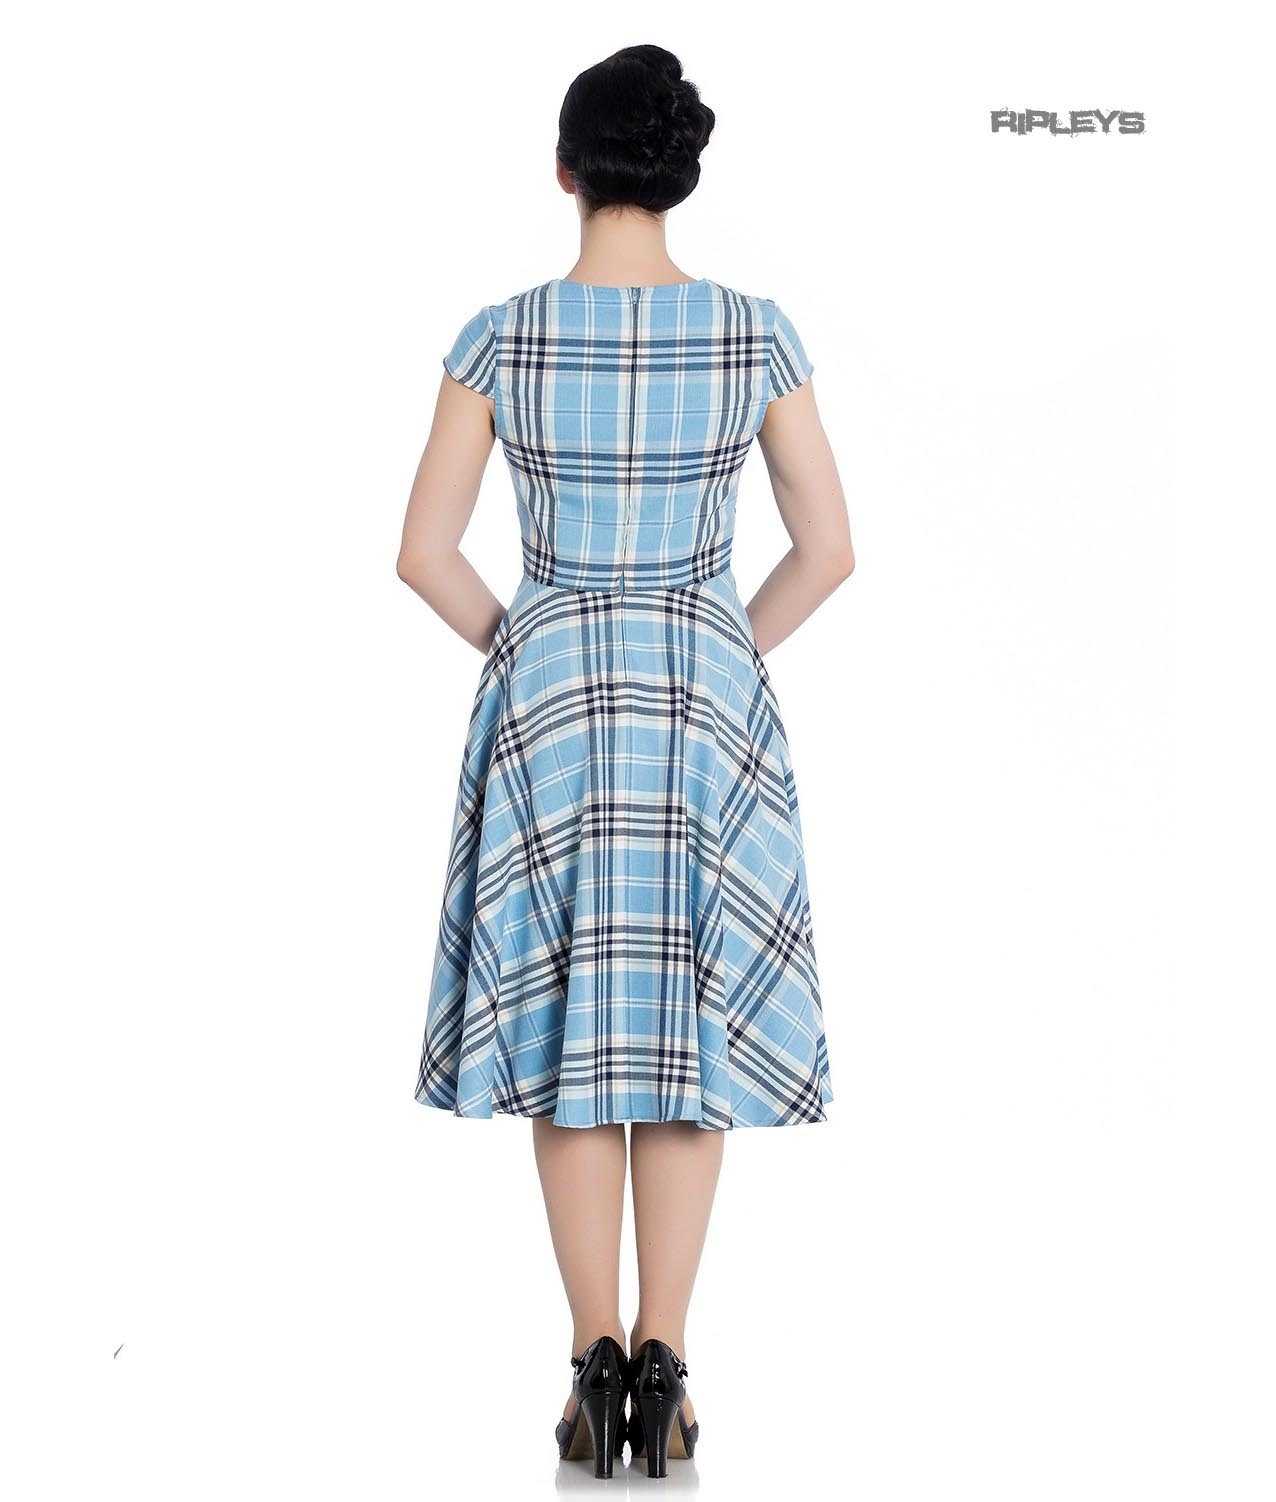 Hell-Bunny-Pinup-50s-Dress-ABERDEEN-Hogmony-Sky-Blue-amp-White-Tartan-All-Sizes thumbnail 16